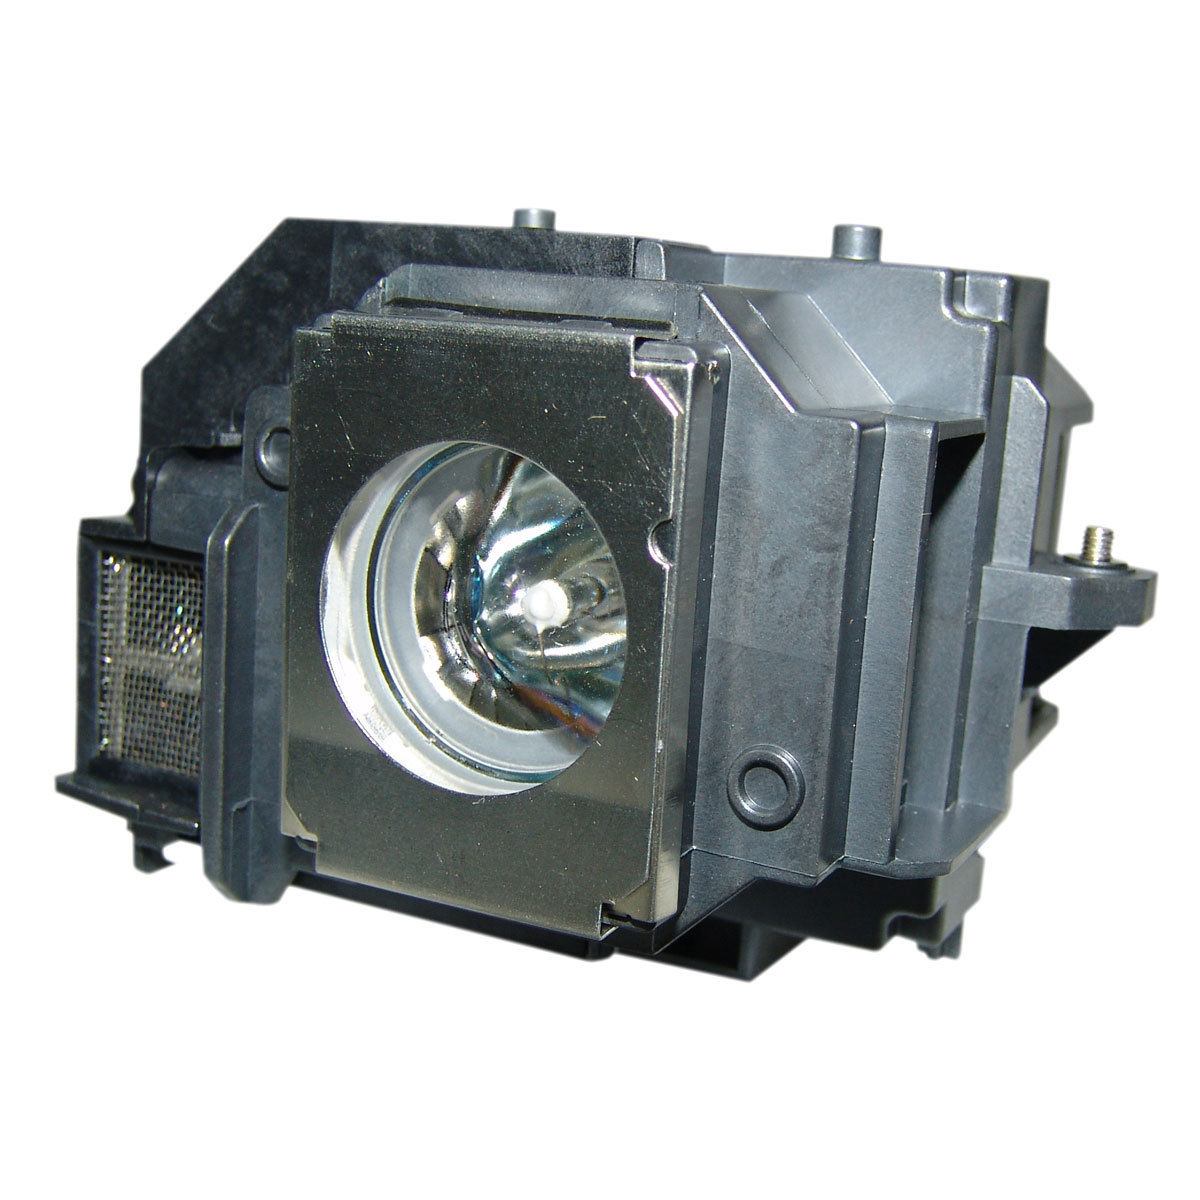 Projector Lamp Bulb ELPLP66 V13H010L66 for Epson MovieMate 85HD with housing osram lamp housing for epson v11h369020 projector dlp lcd bulb